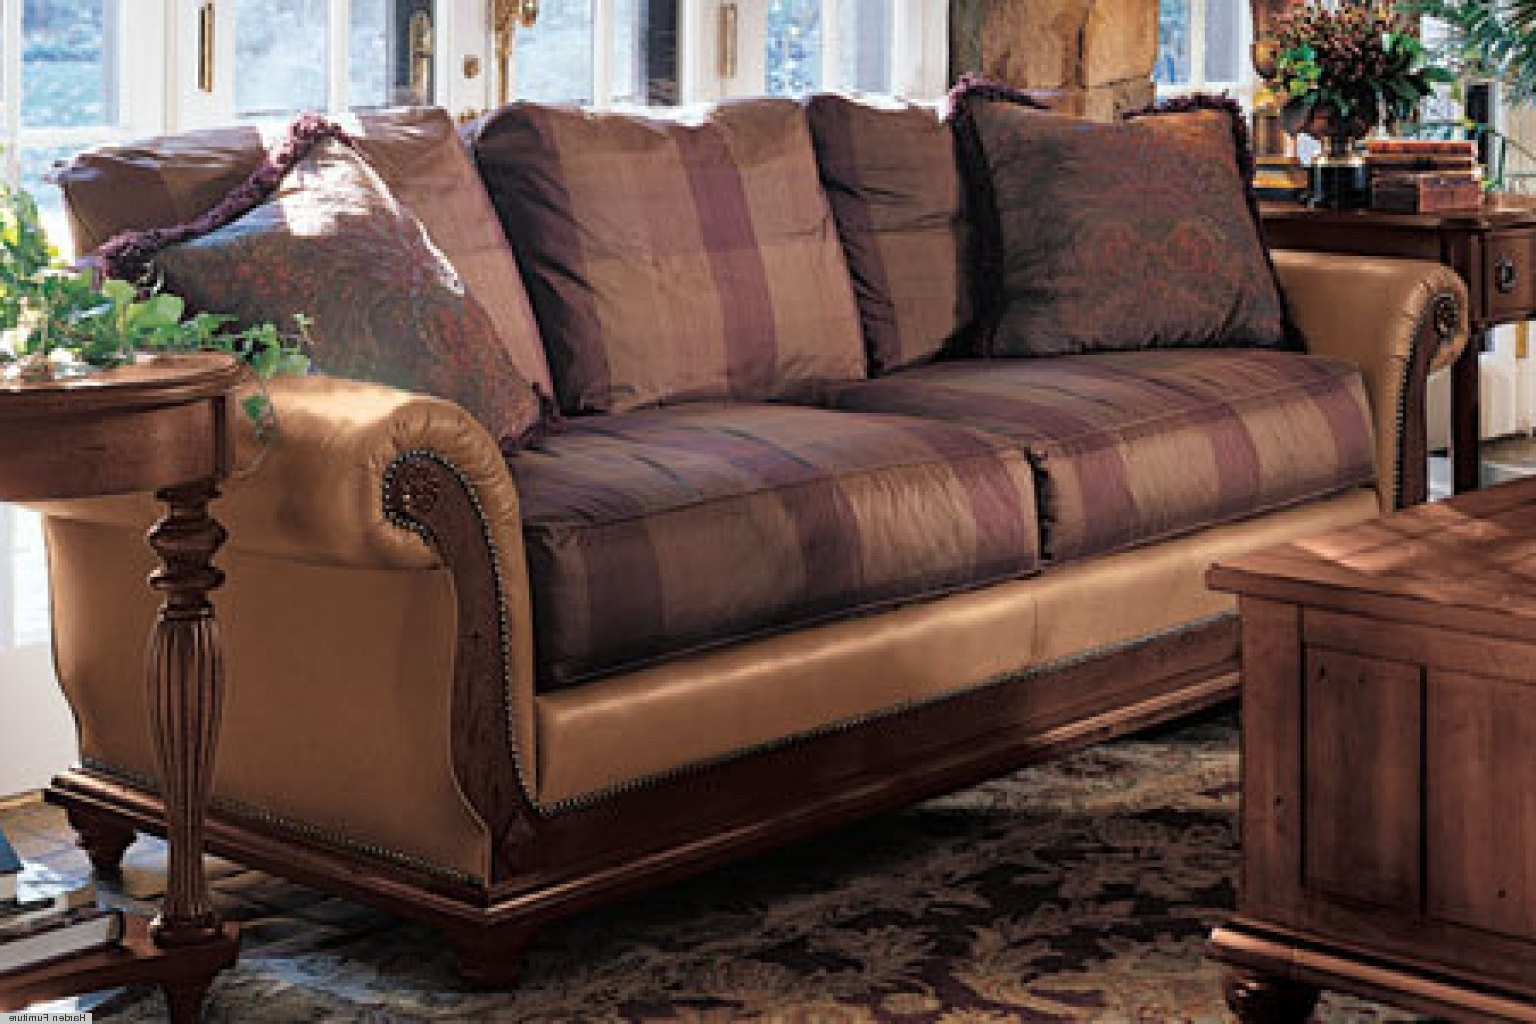 2019 Sectional Sofa Colorado Furniture Row Coupons Sofa Bed Denver Pertaining To Furniture Row Sectional Sofas (View 5 of 20)